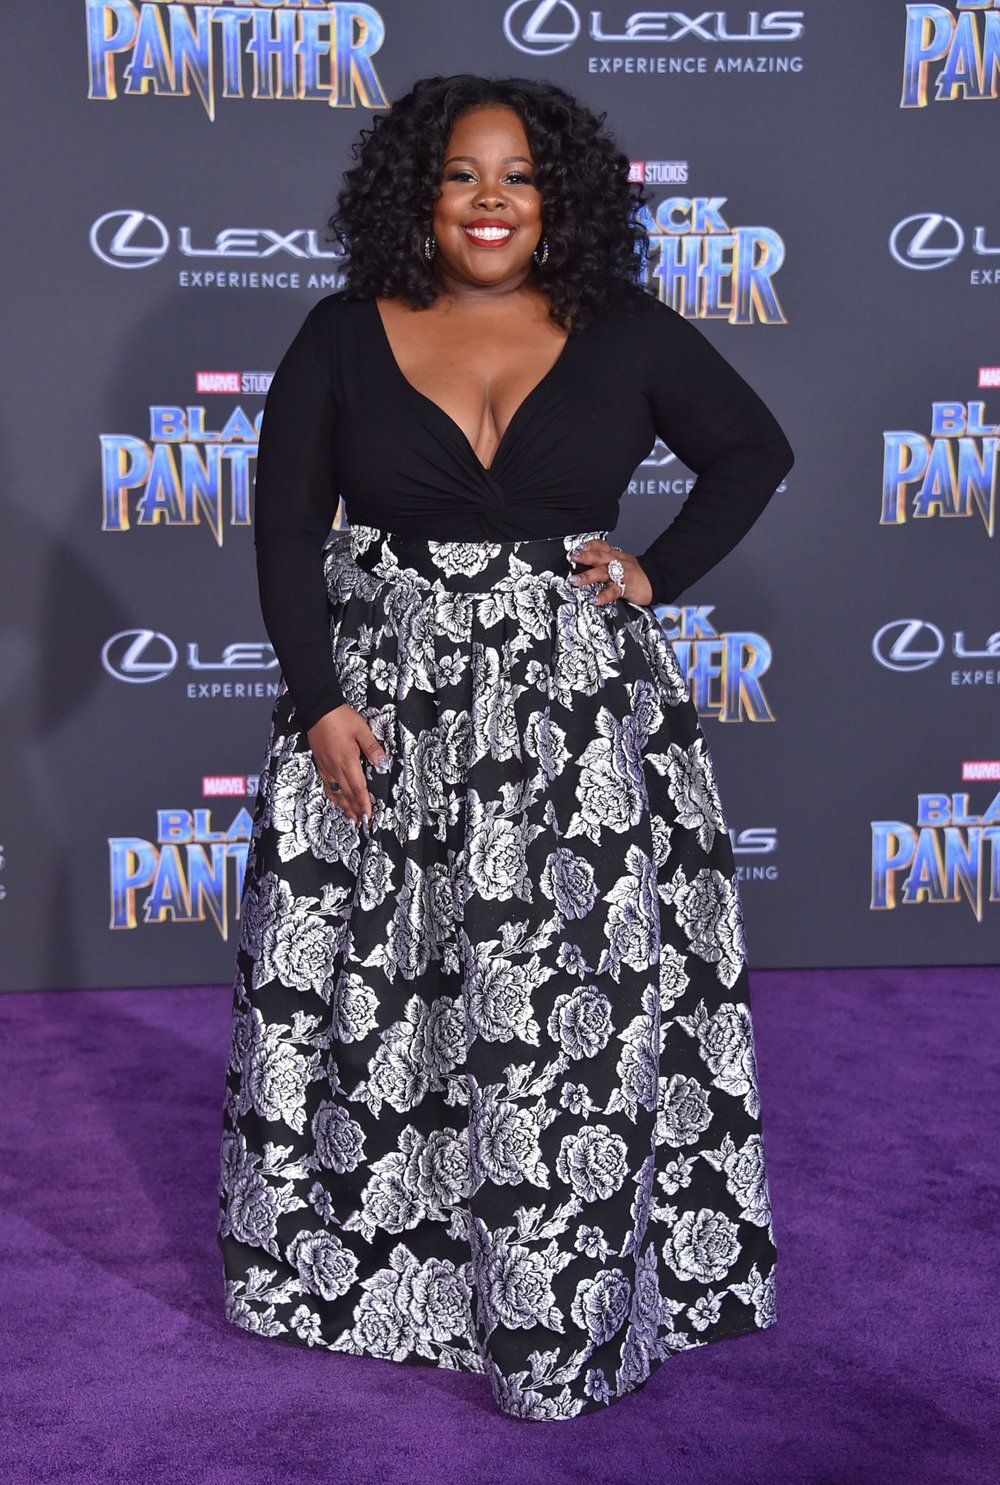 amber-riley-black-panther-premiere-in-hollywood-0.jpg